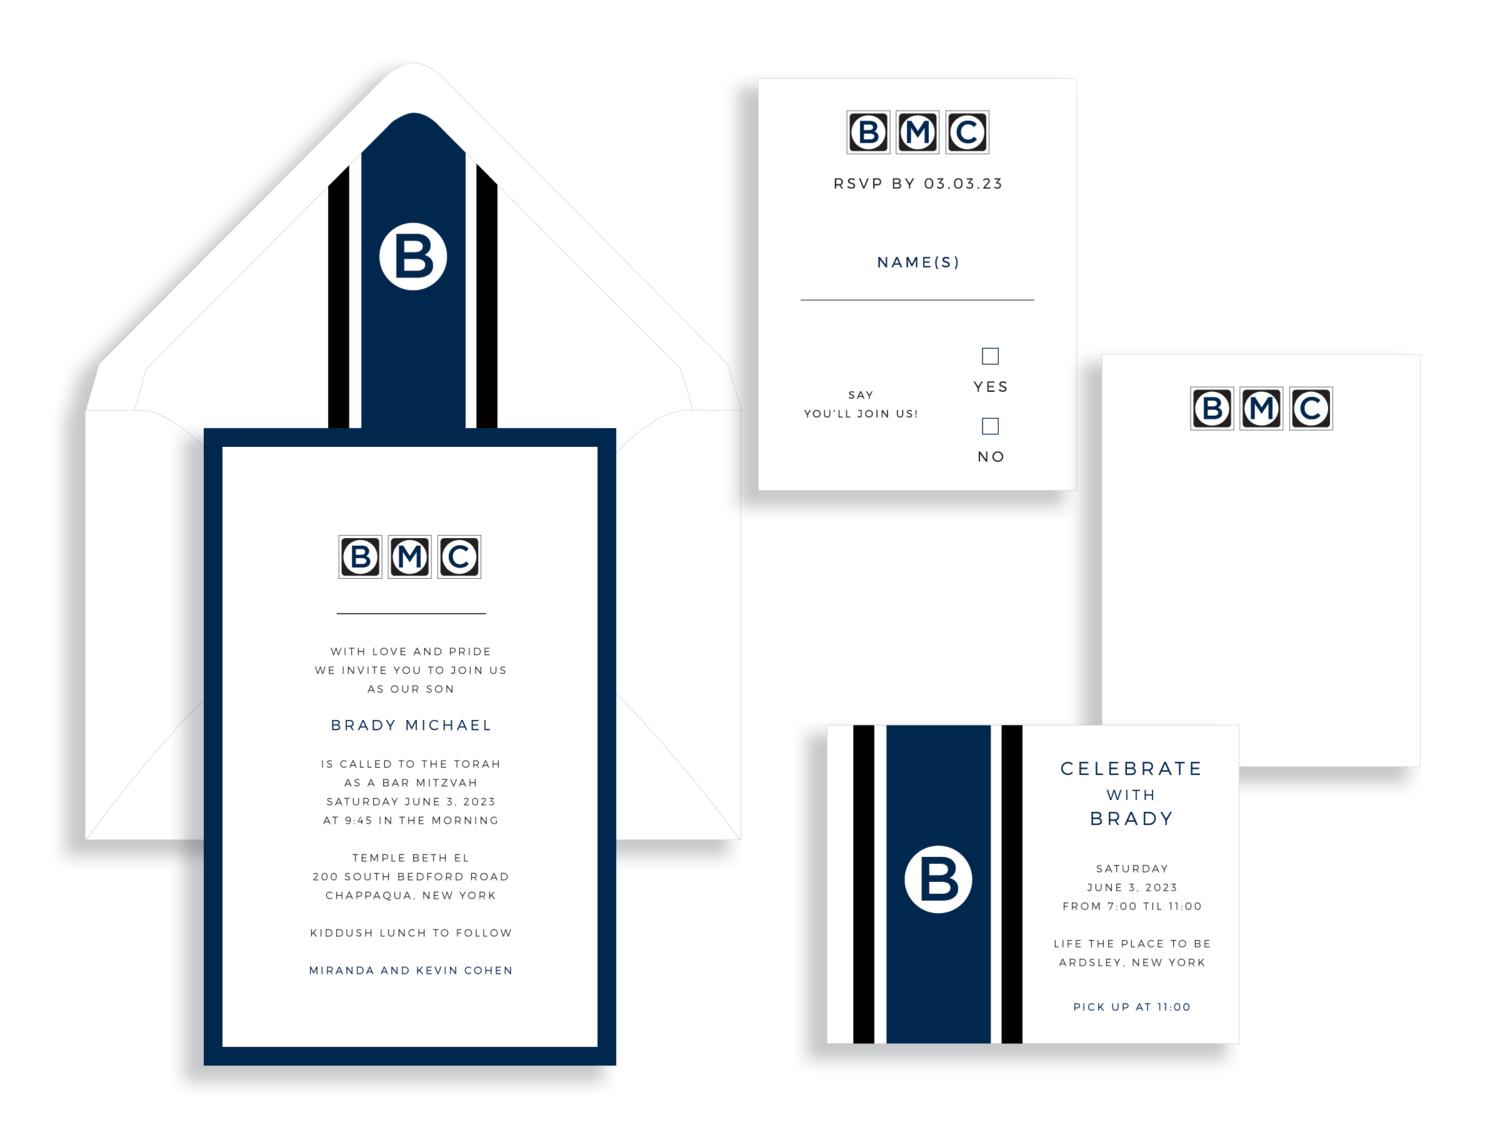 Bar Mitzvah invitation available in Northern Virginia from Staccato. Brady Michael bar mitzvah invitation by B.T. Elements